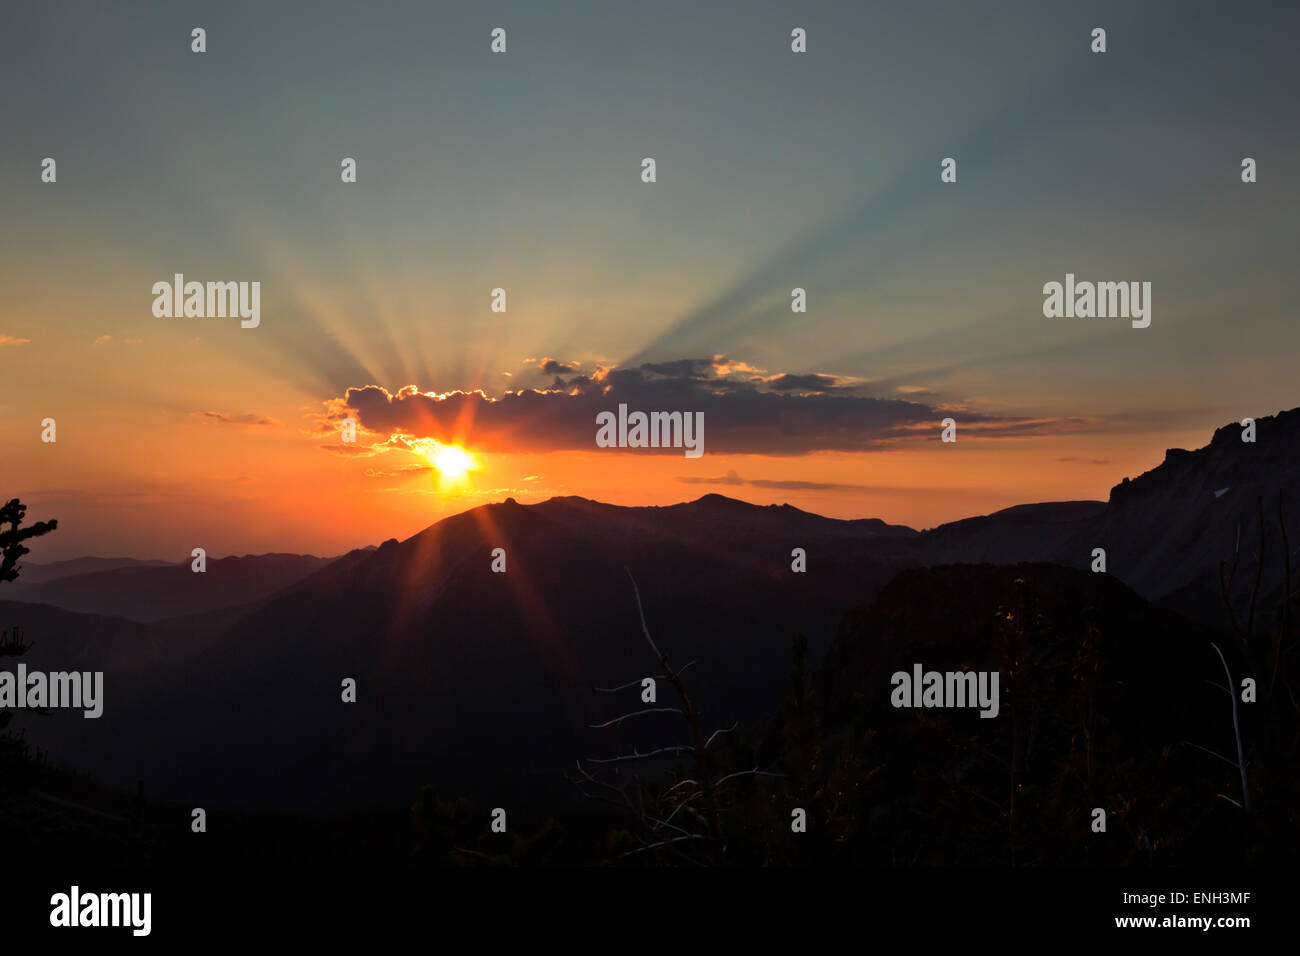 WA10602-00...WASHINGTON - Sun coming up in the early morning on Curtis Ridge in Mount Rainier National Park. - Stock Image